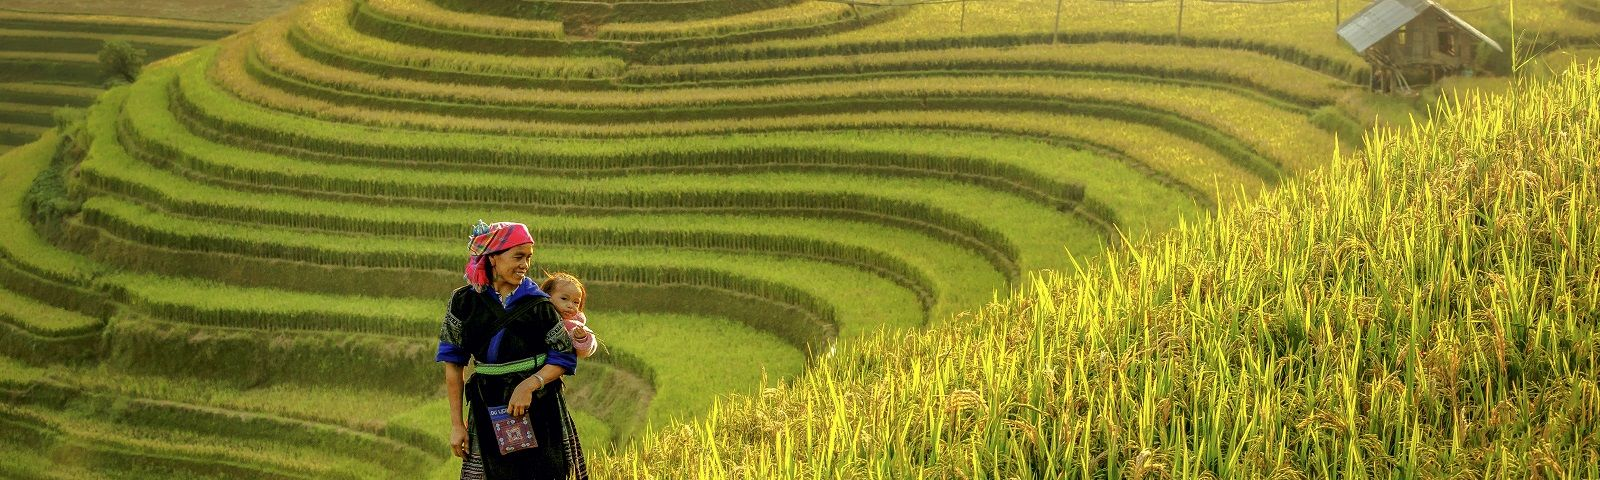 Mother and baby were walking in a symbol of Mu cang chai rice terraces Vietnam